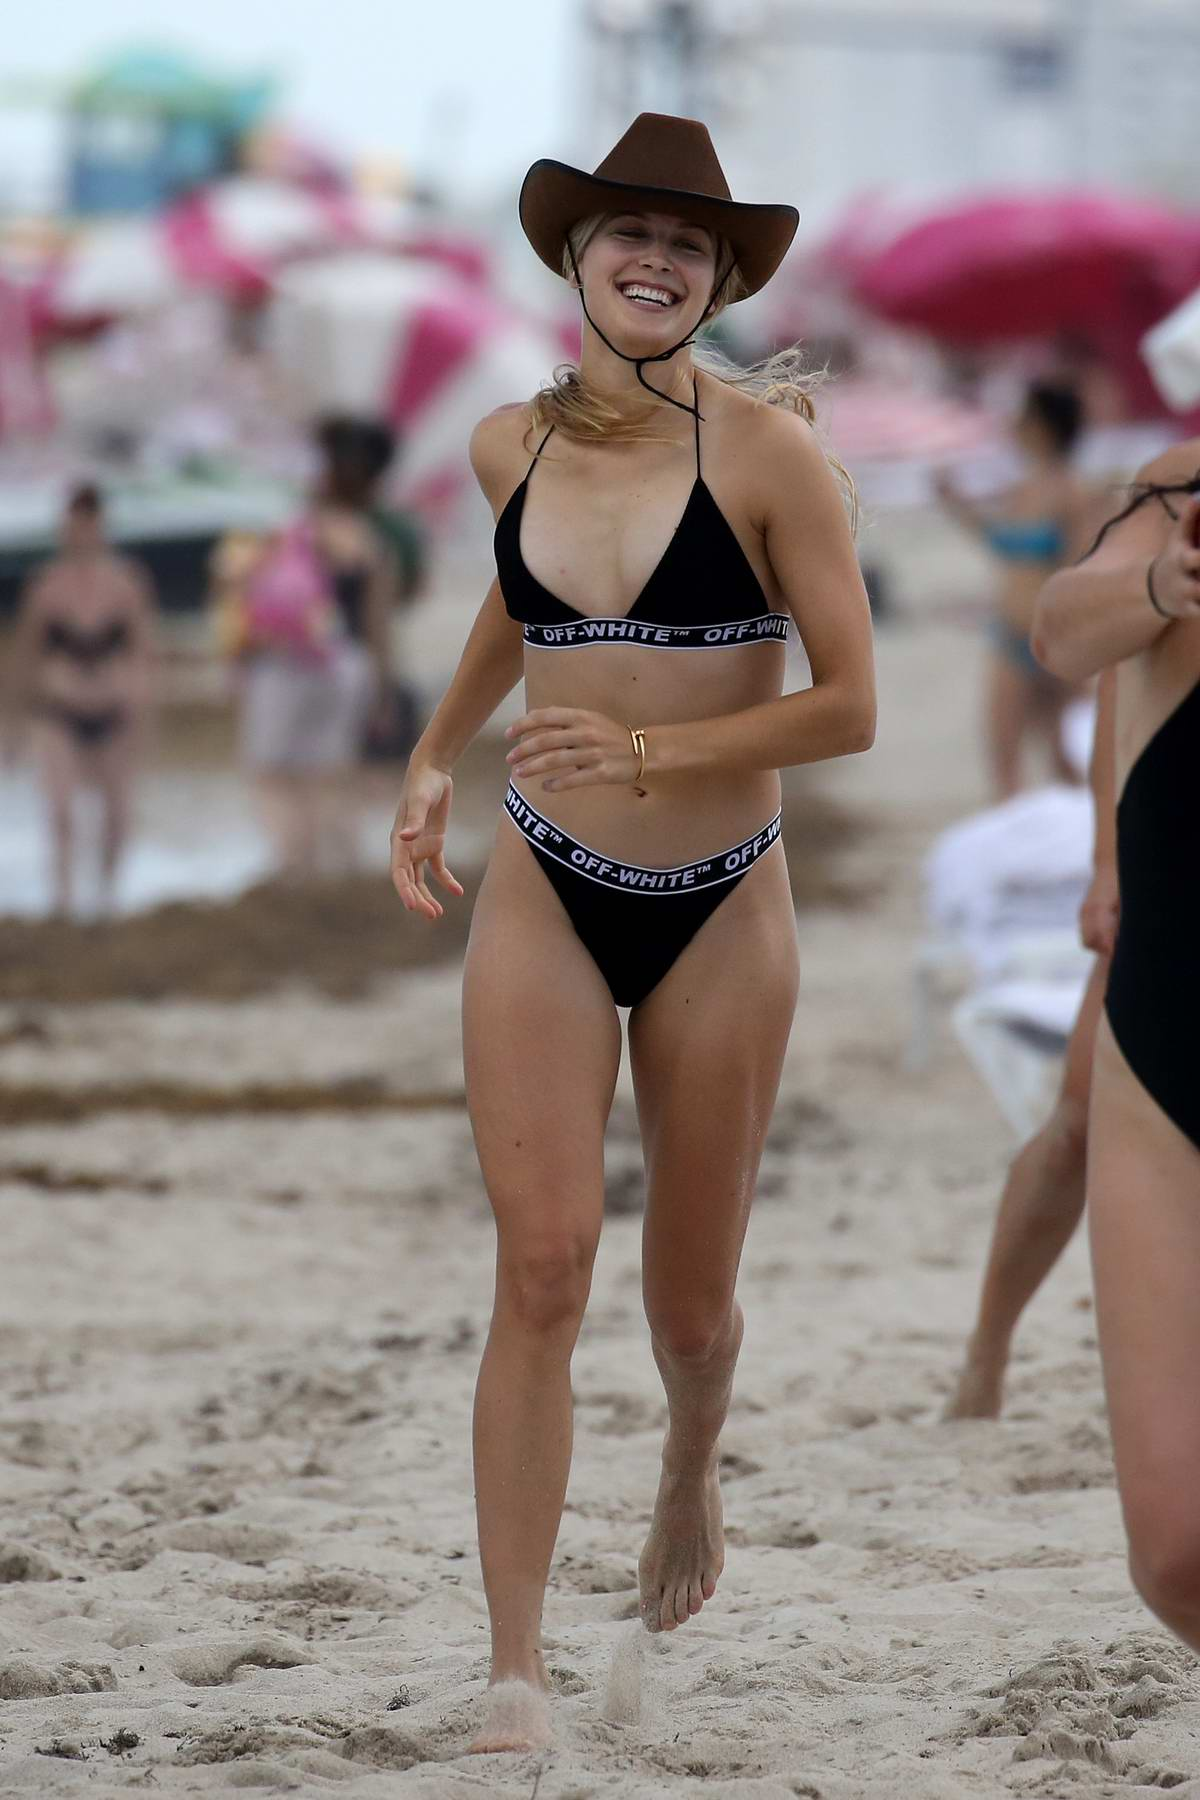 Eugenie Bouchard looks stunning in a black bikini and cowboy hat while enjoying the beach with friends in Miami, Florida